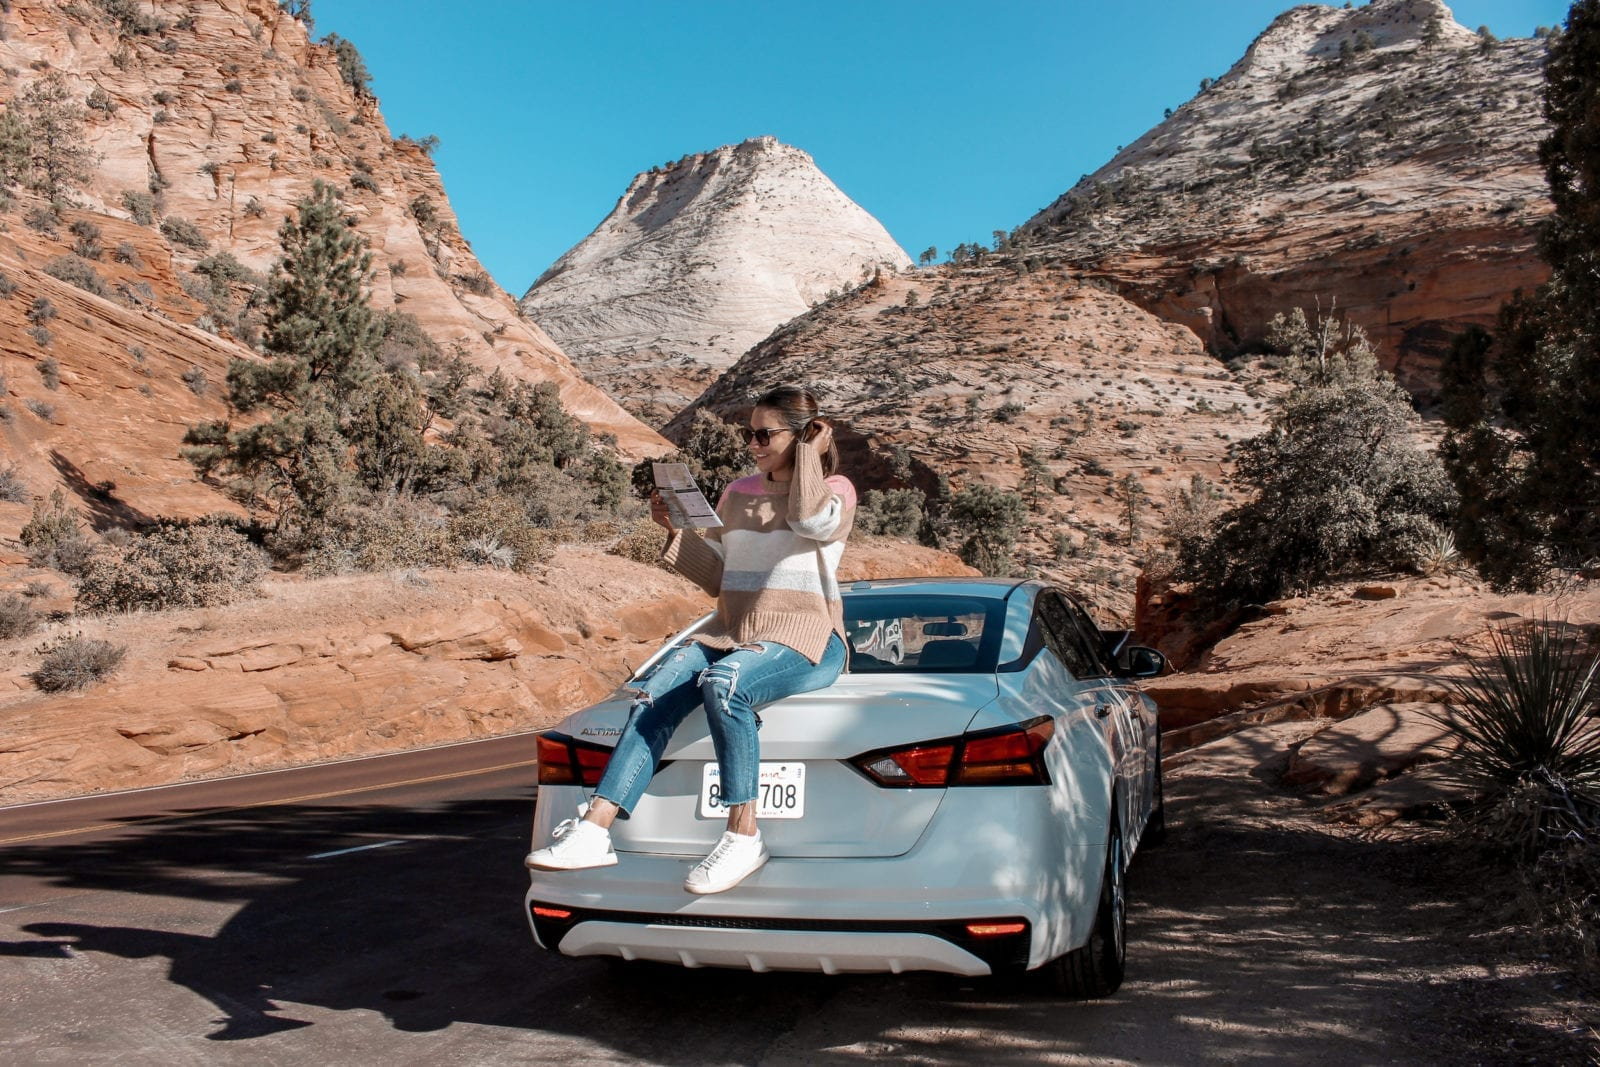 In this photo, Adaleta is sitting on top of white car in the middle of Zion National Park looking at a map of the park.